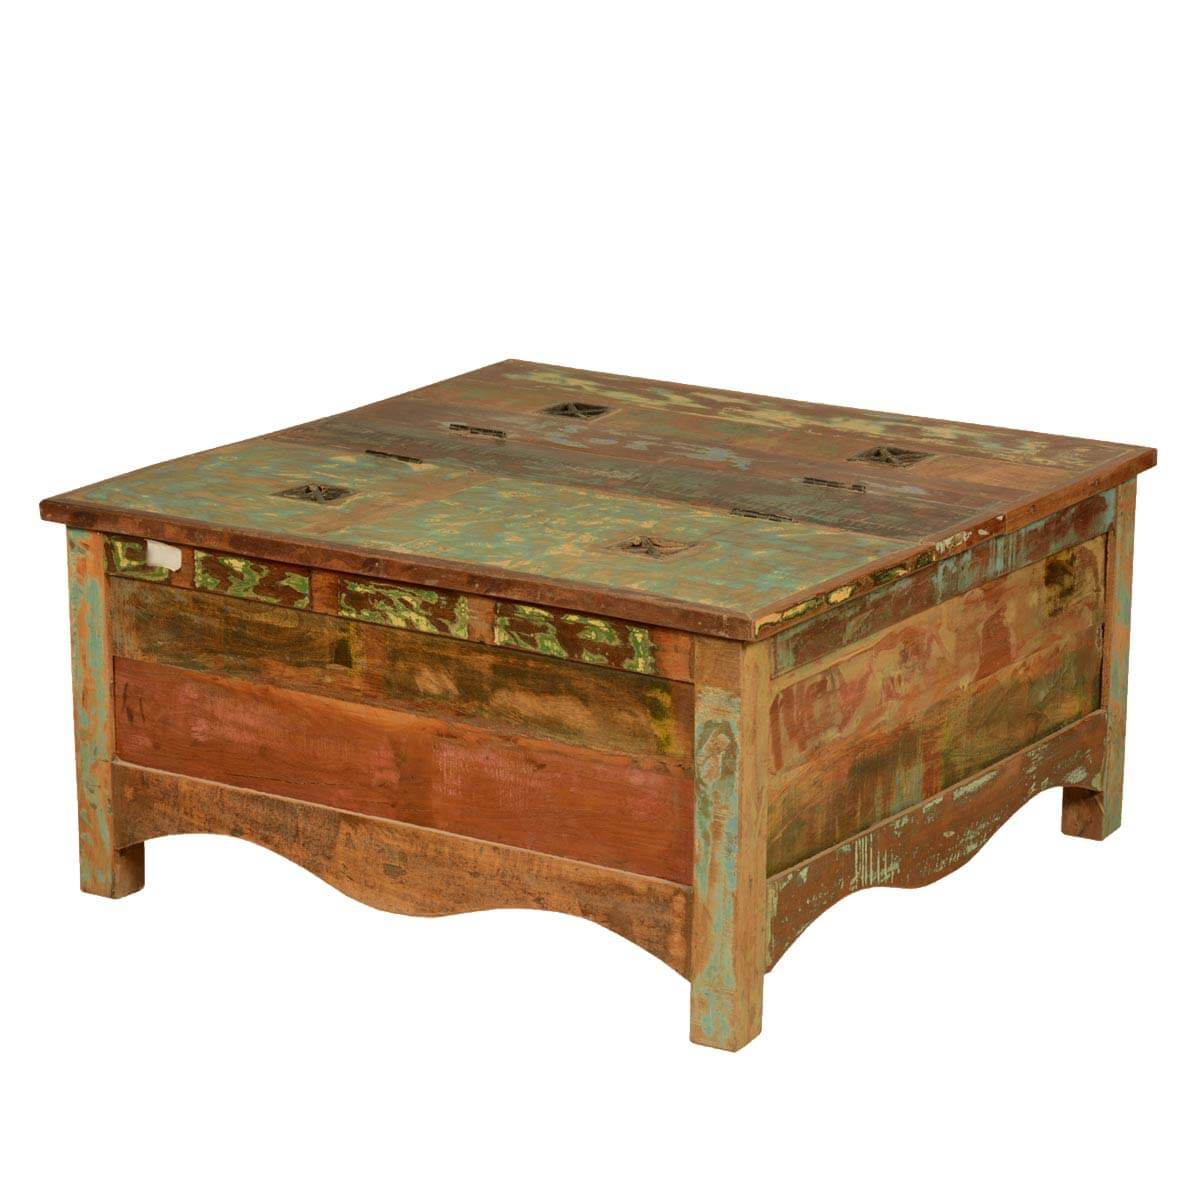 Rustic reclaimed wood 35 5 square double top coffee table chest Coffee tables rustic